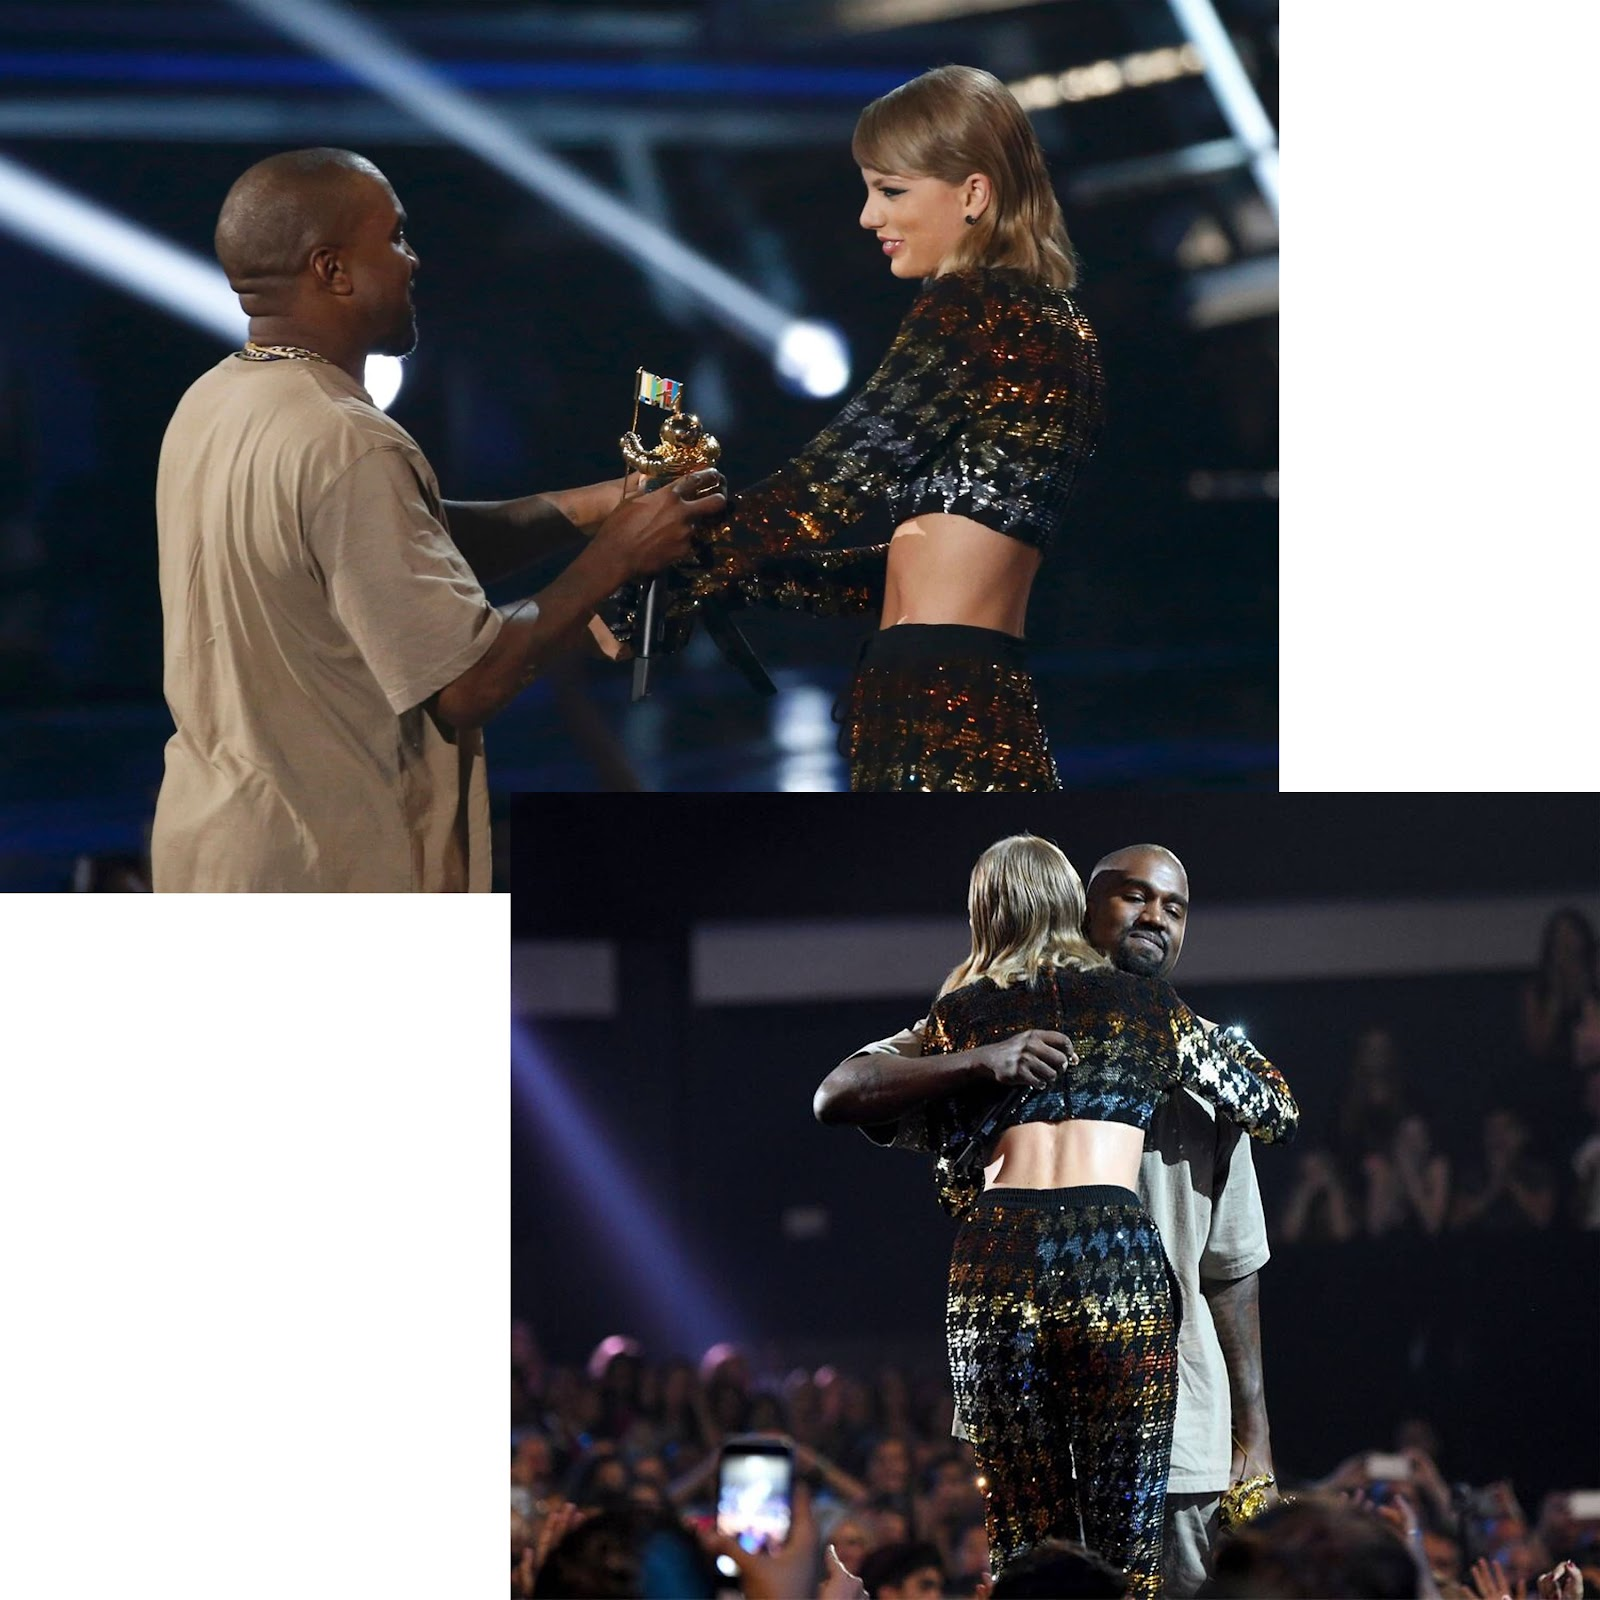 KANYE WEST ASKED FOR TAYLOR PERMISSION BUT DIDNT ASK FOR